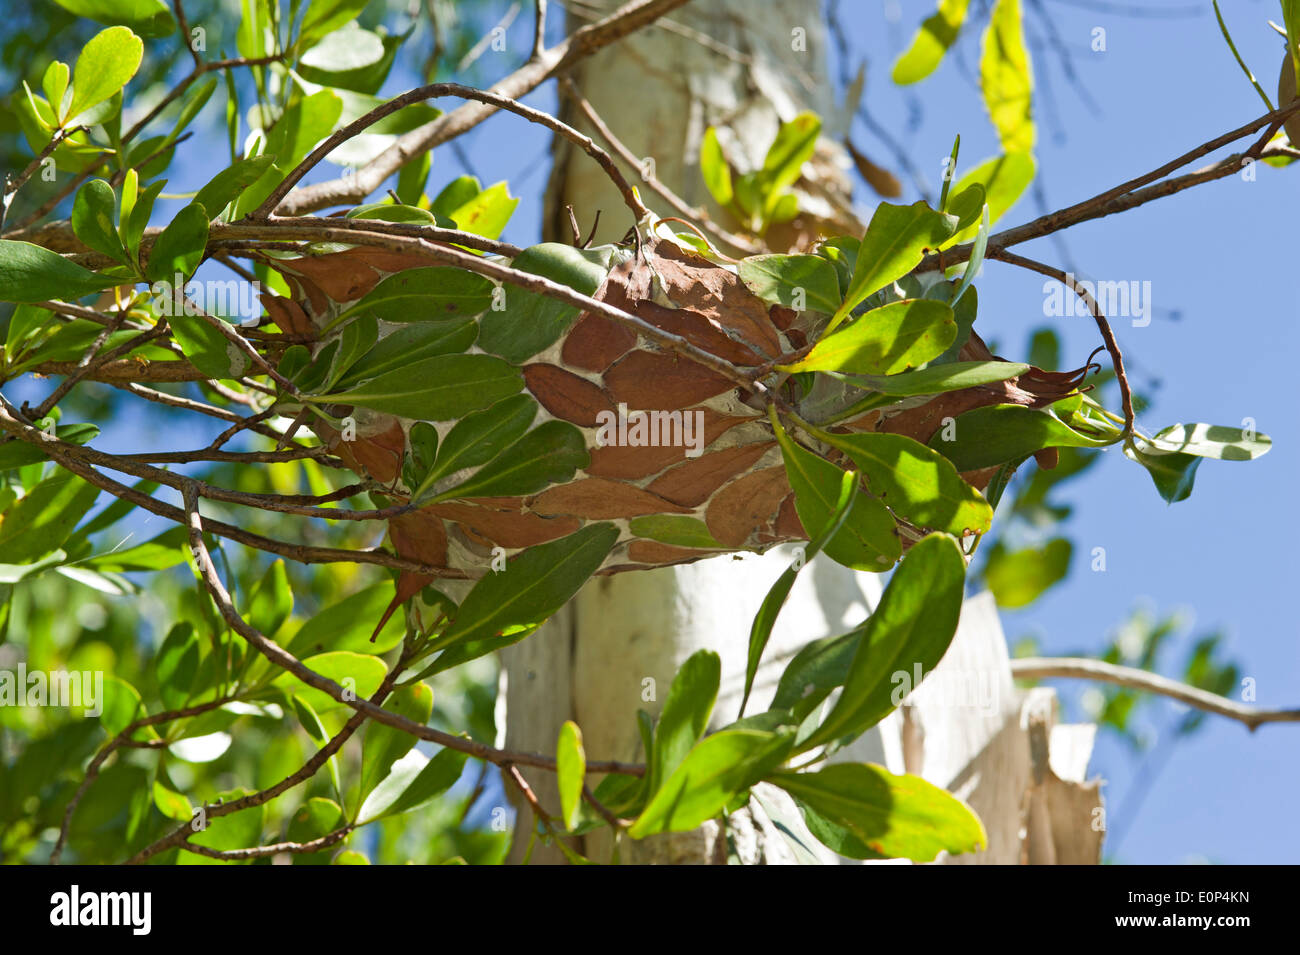 Green tree ant nest in northern Australia - Stock Image